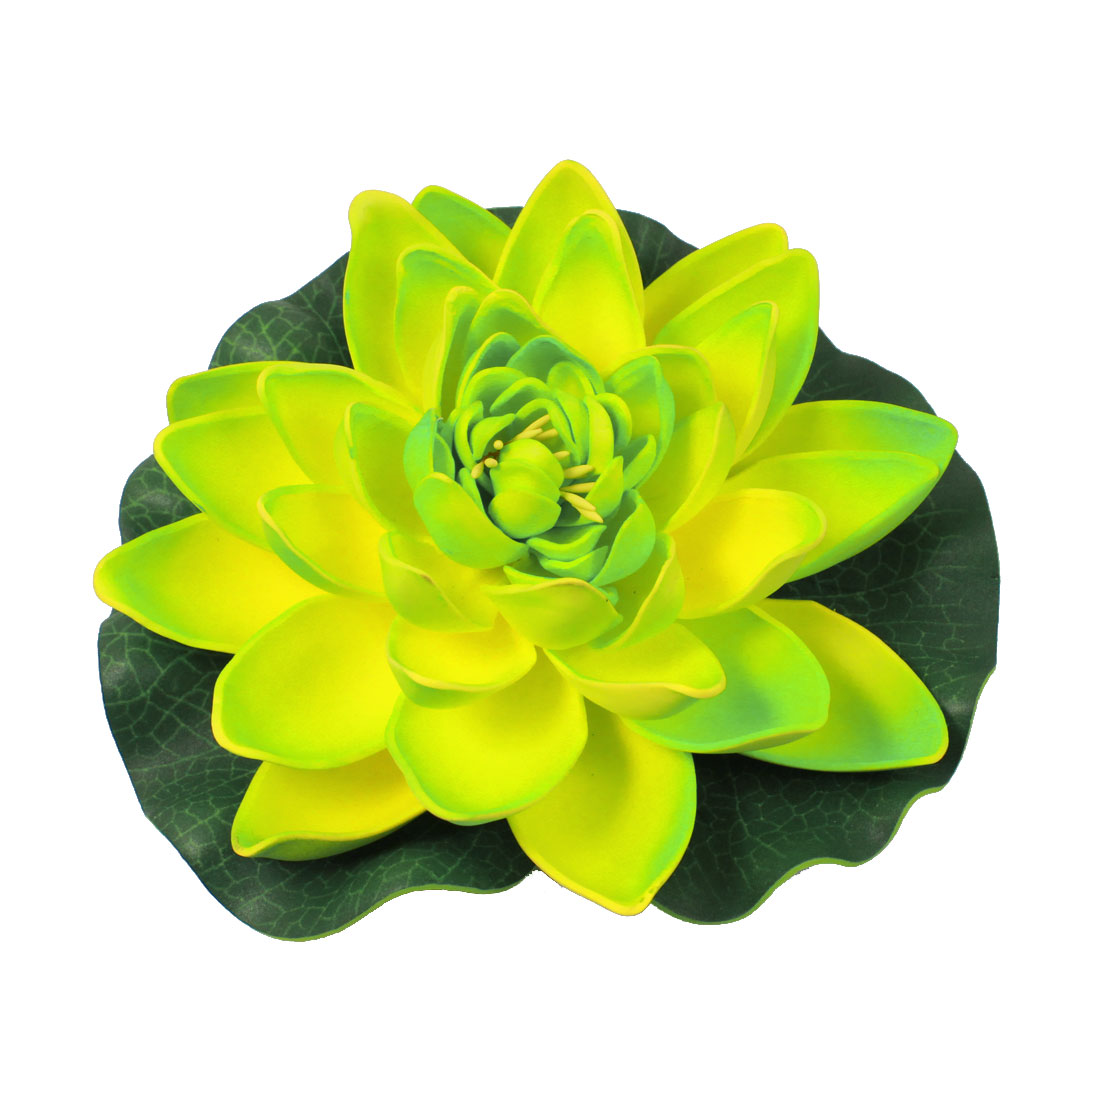 Yellow Green Artificial Floating Lotus Floral 17cm Dia for Fish Tank Aquarium